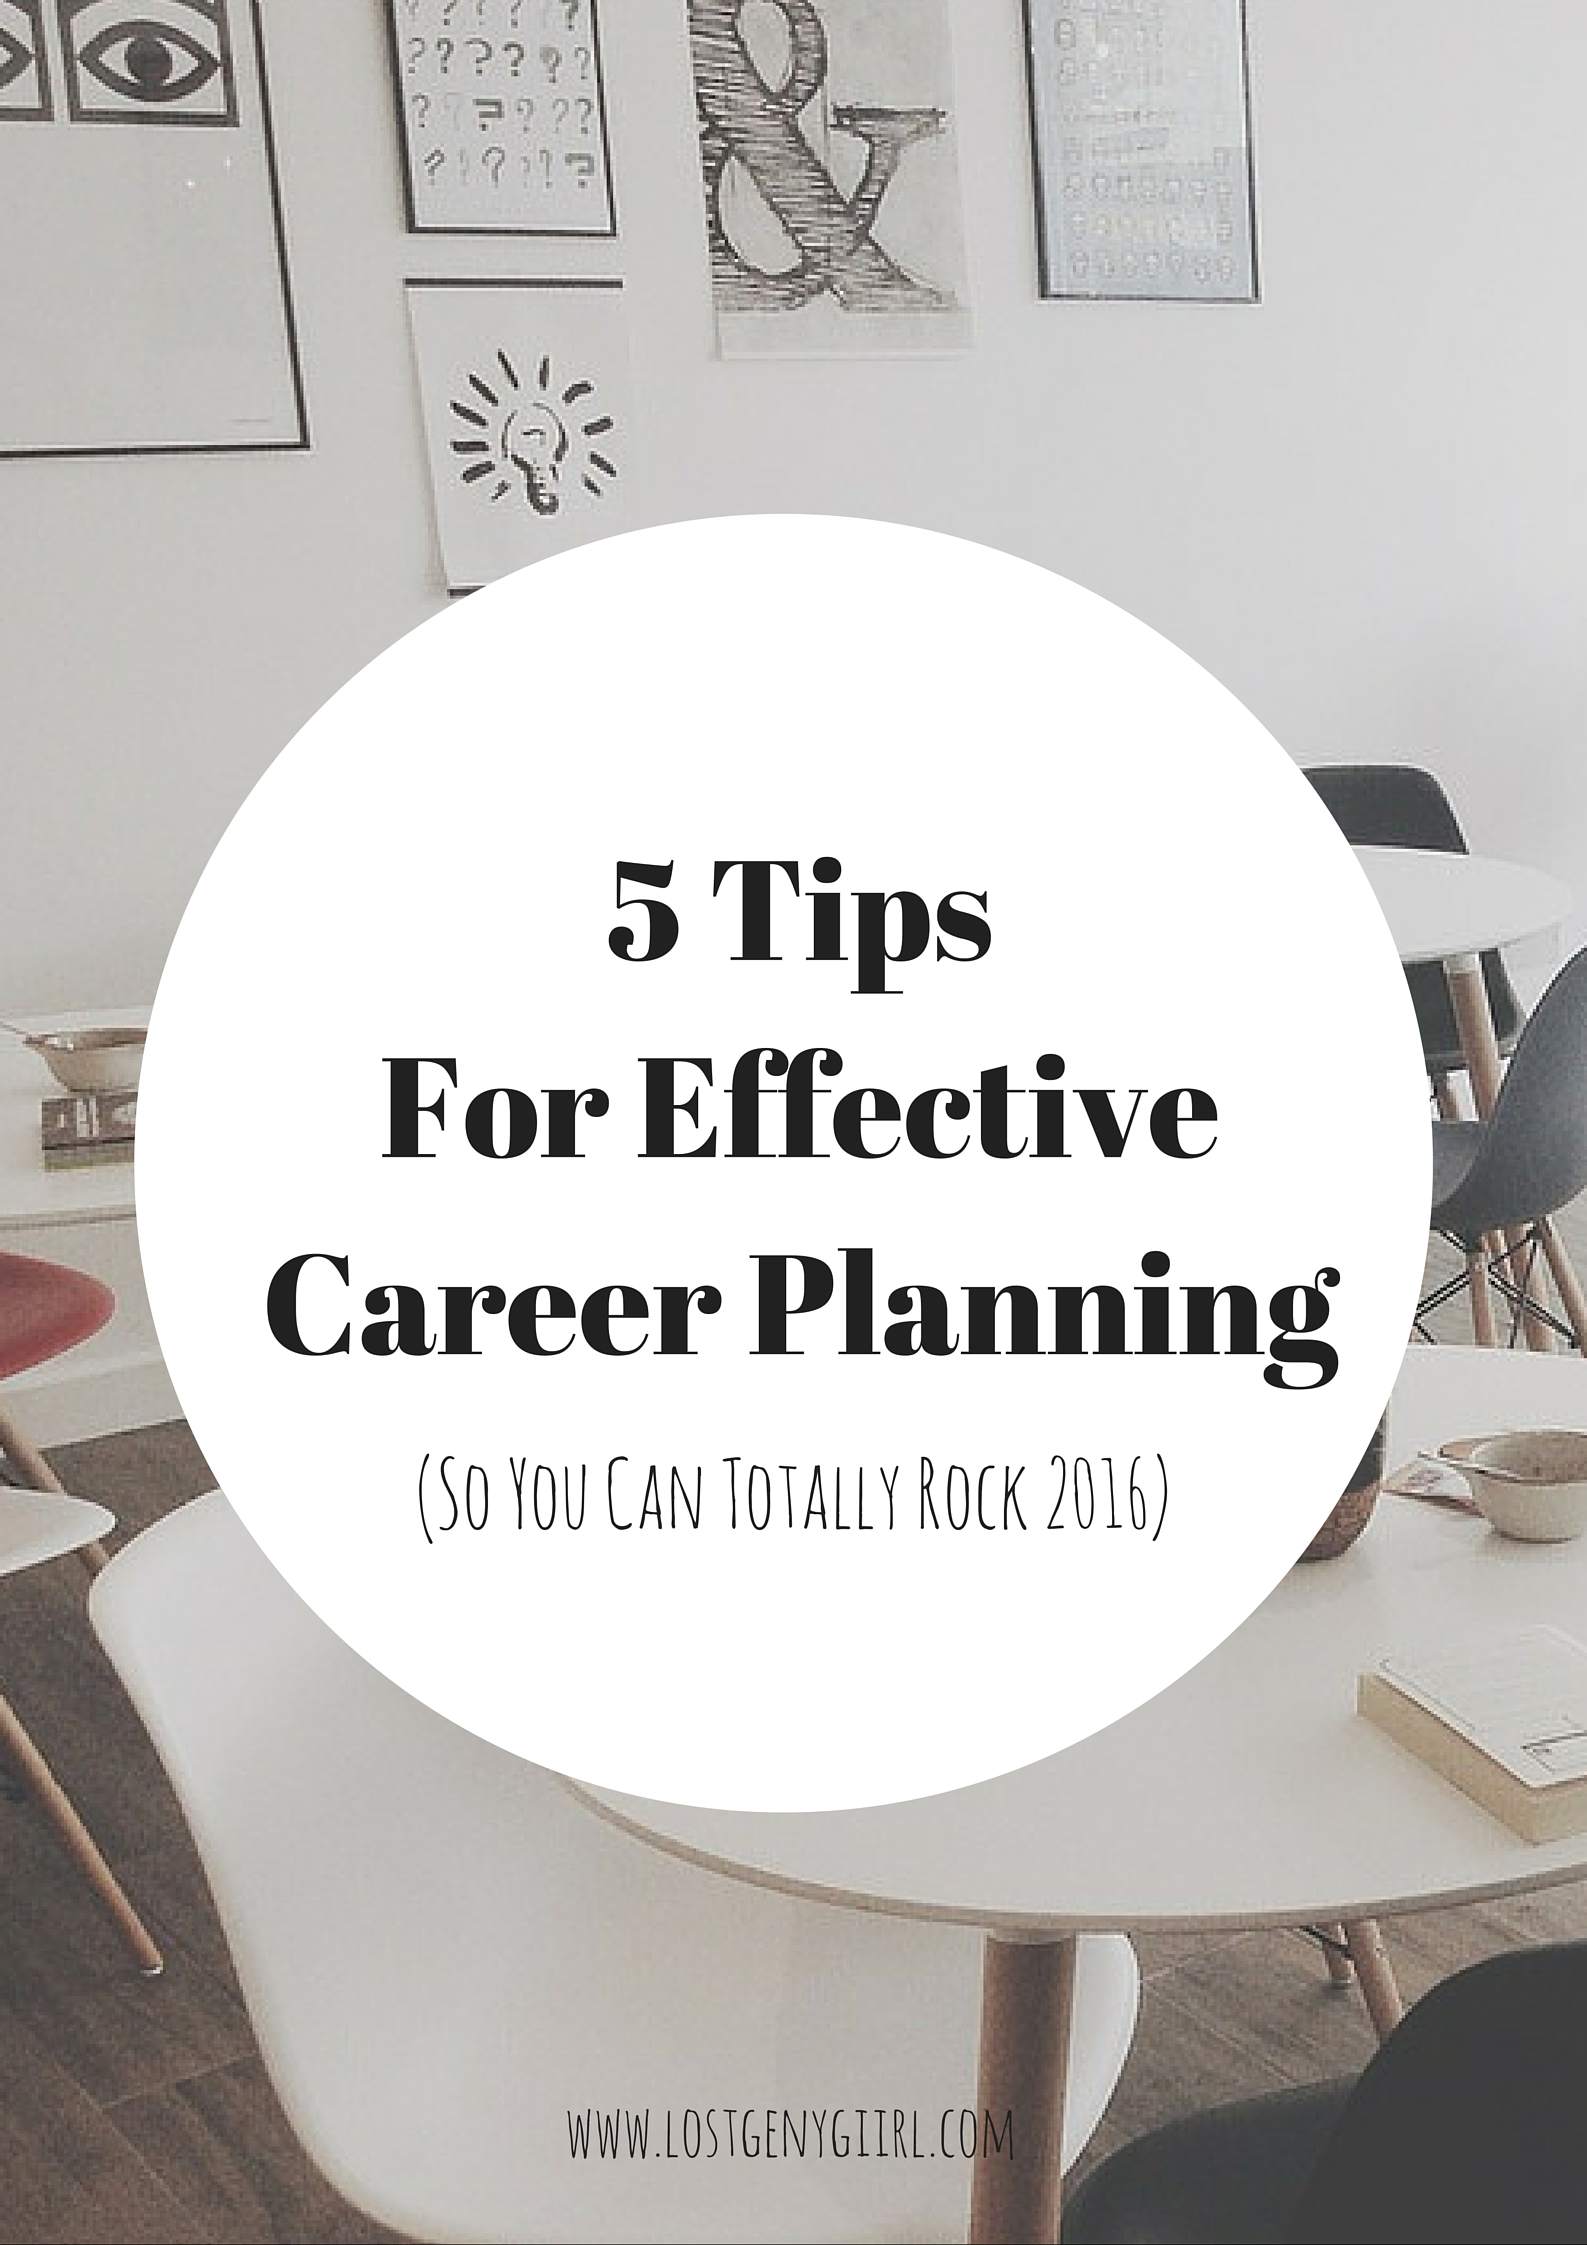 5 Tips For Effective Career Planning